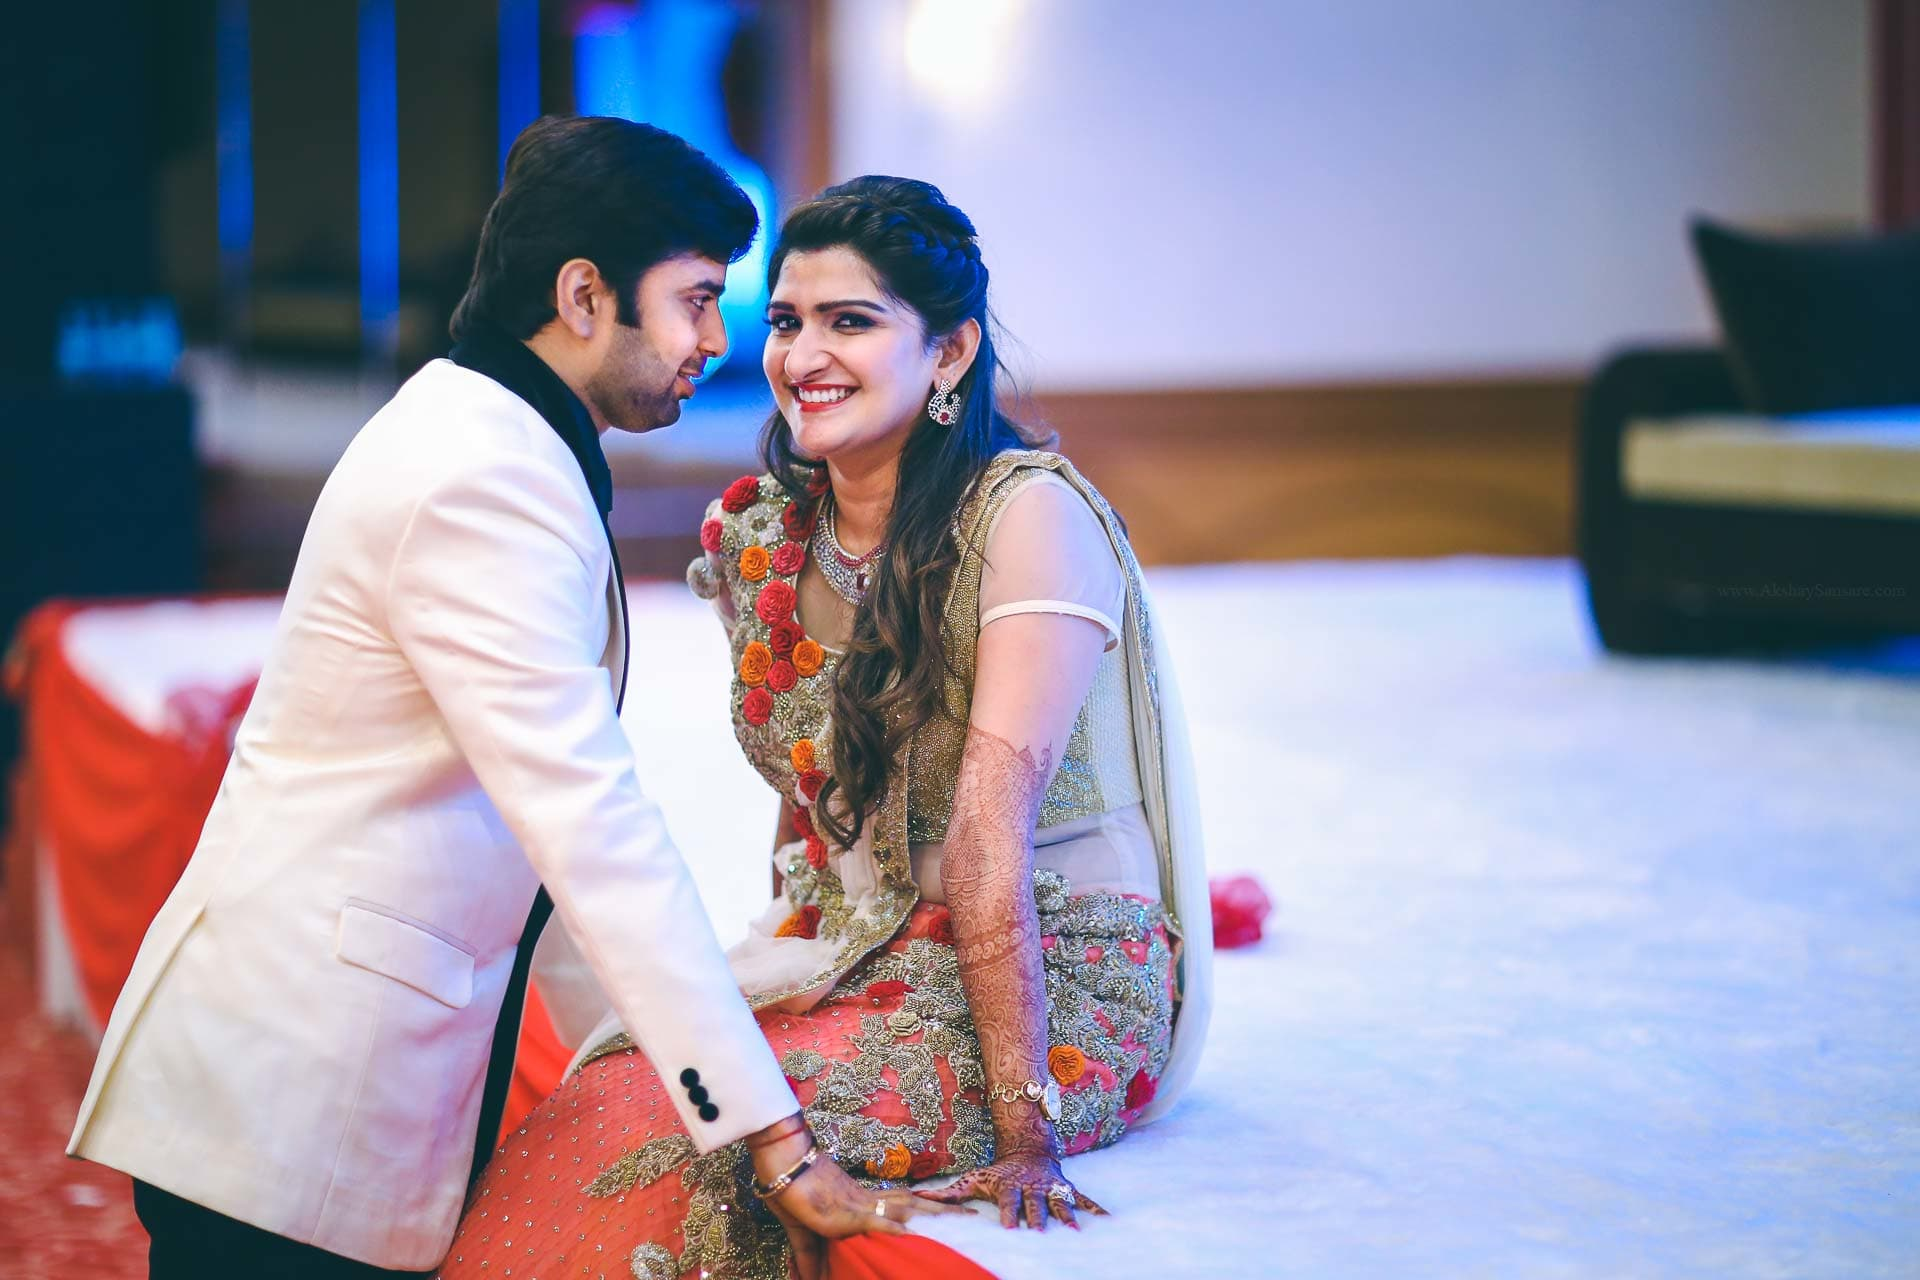 anuj & malvika!:akshay sansare photography and films